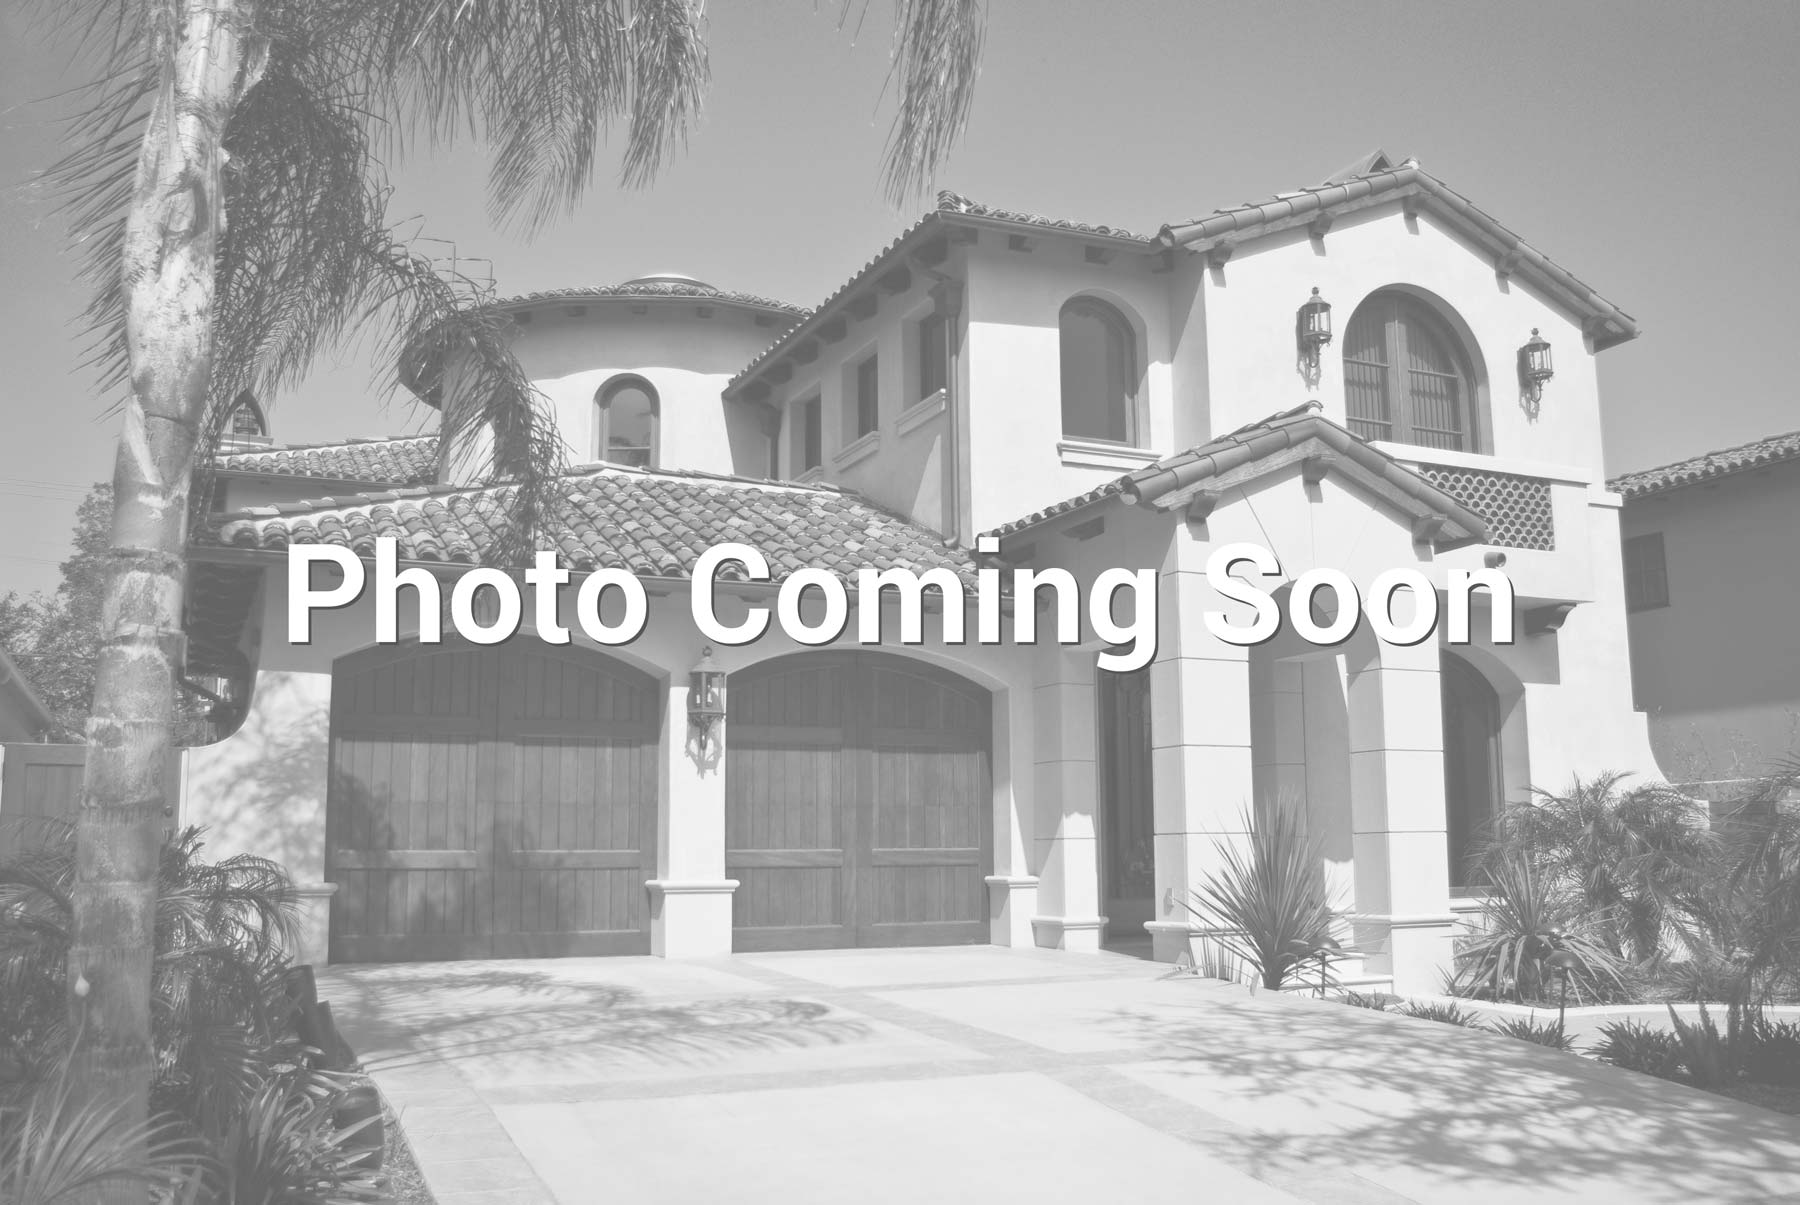 $1,000,000 - 4Br/2Ba -  for Sale in Imperial Beach, Imperial Beach